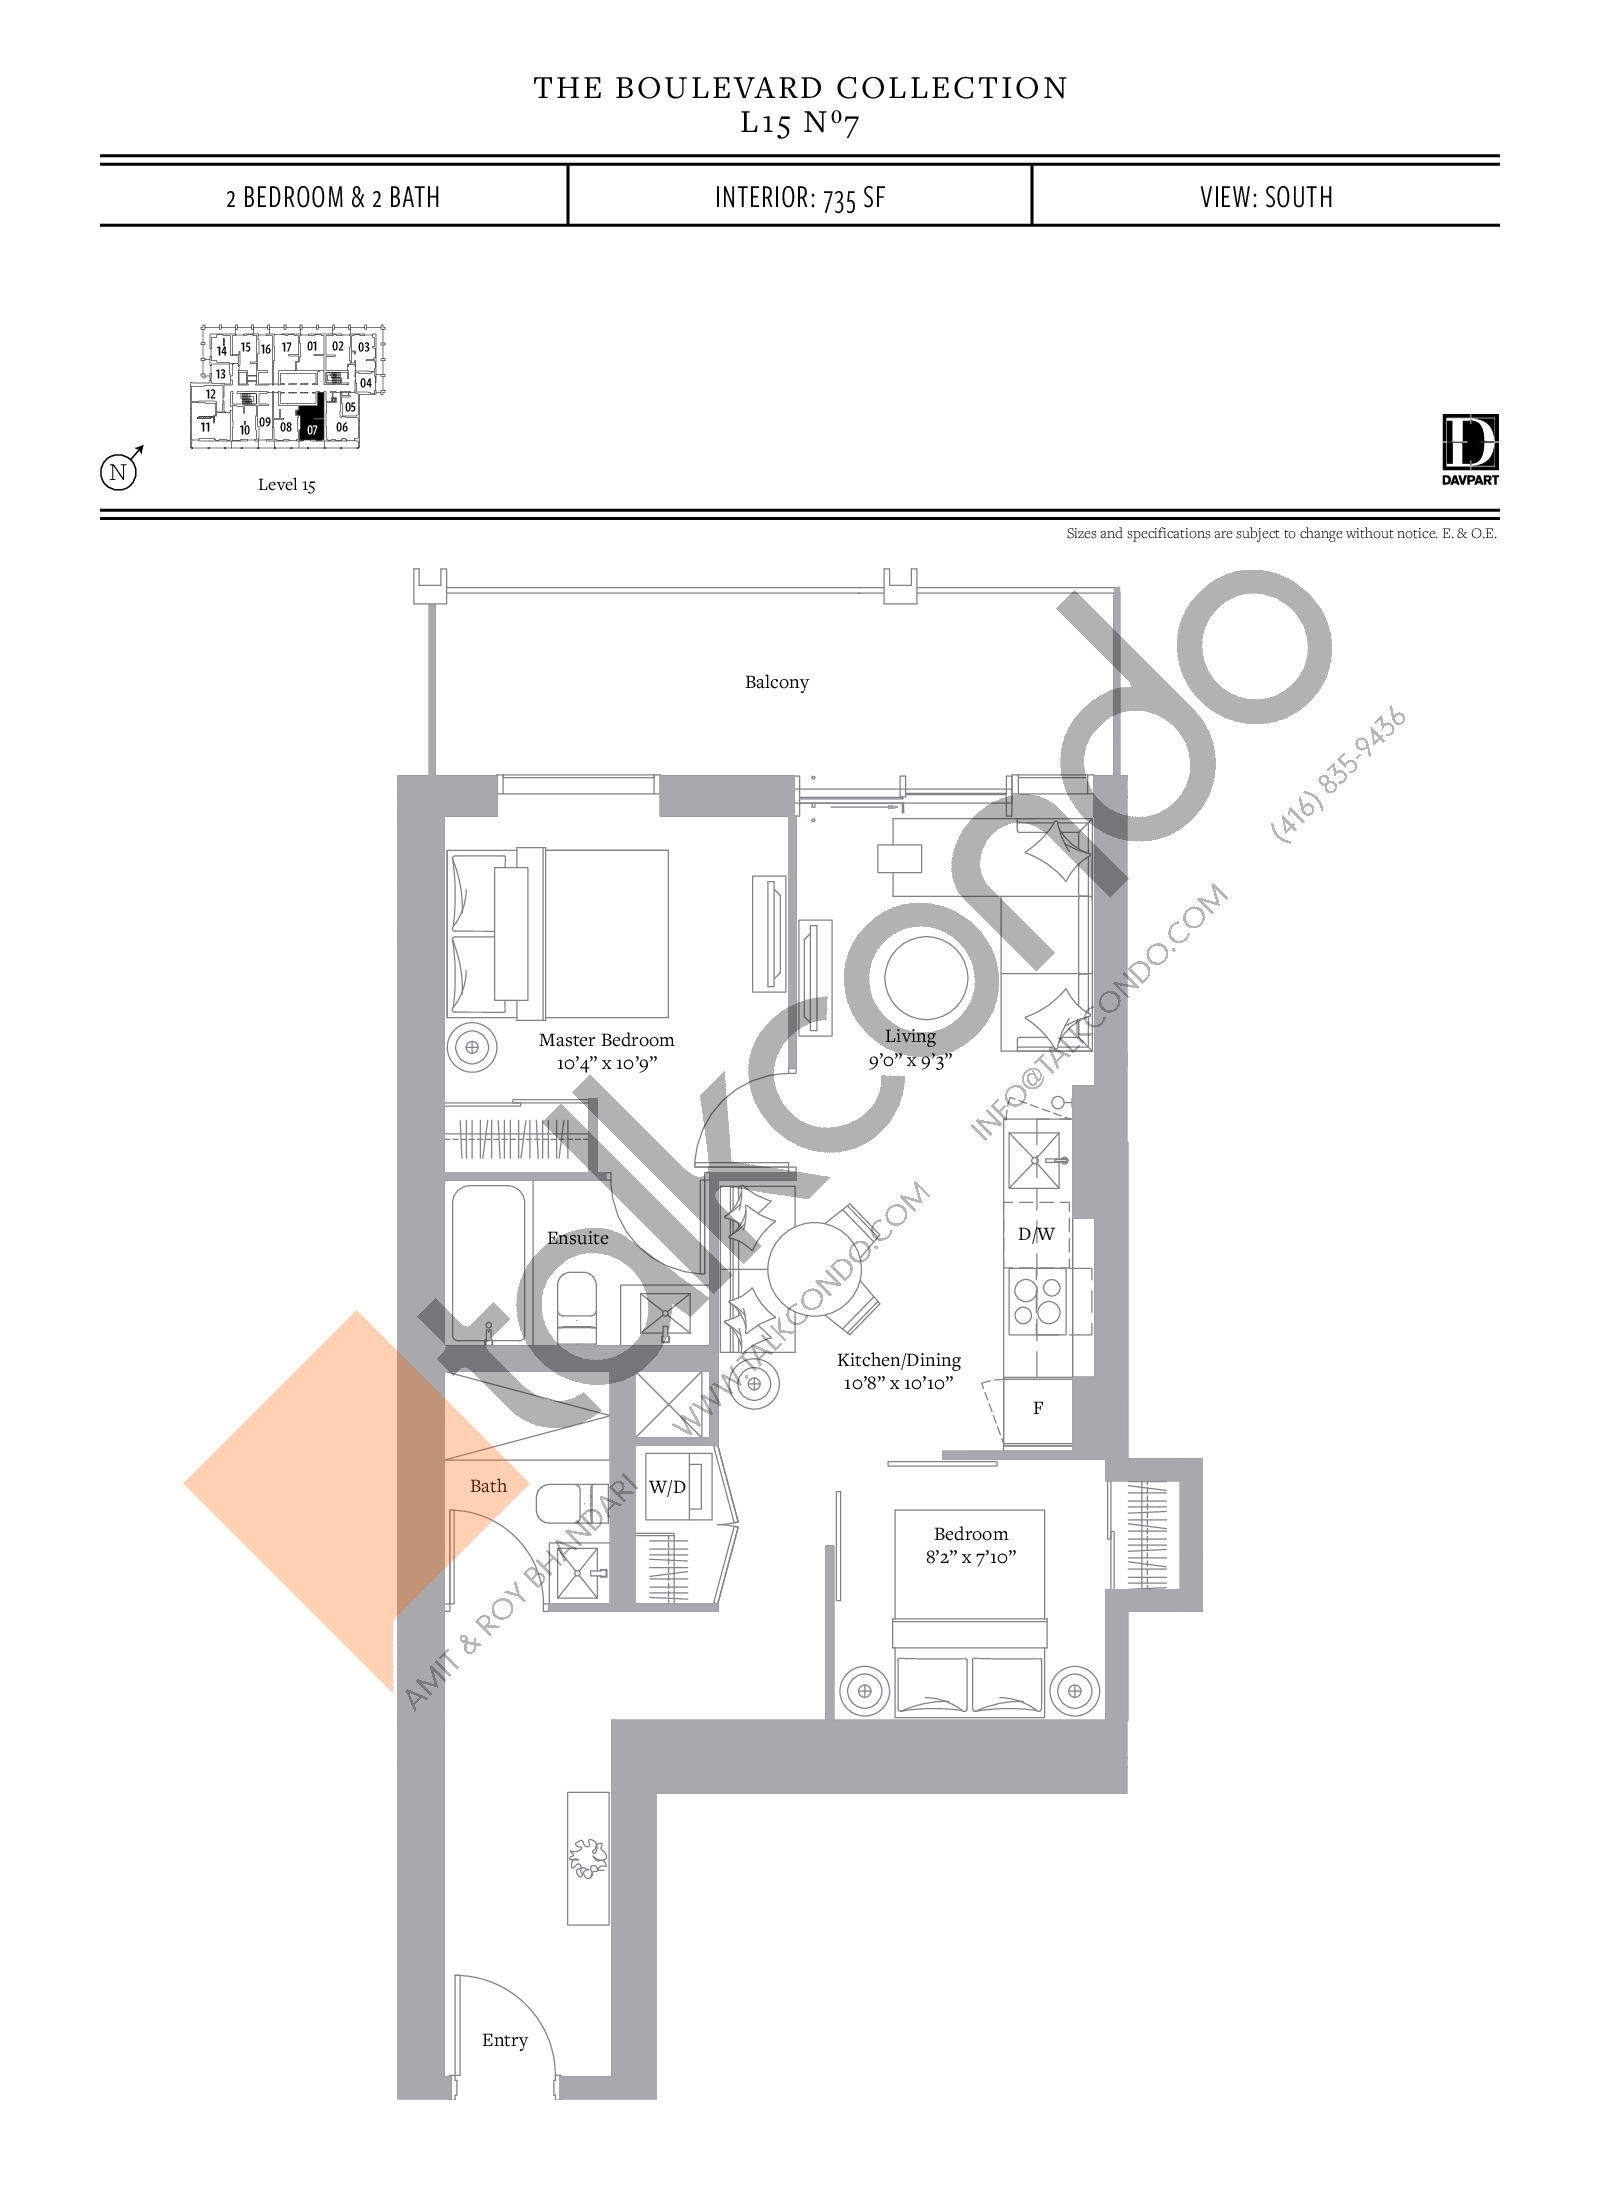 No 7 - The Boulevard Collection Floor Plan at The United Bldg. Condos - 735 sq.ft